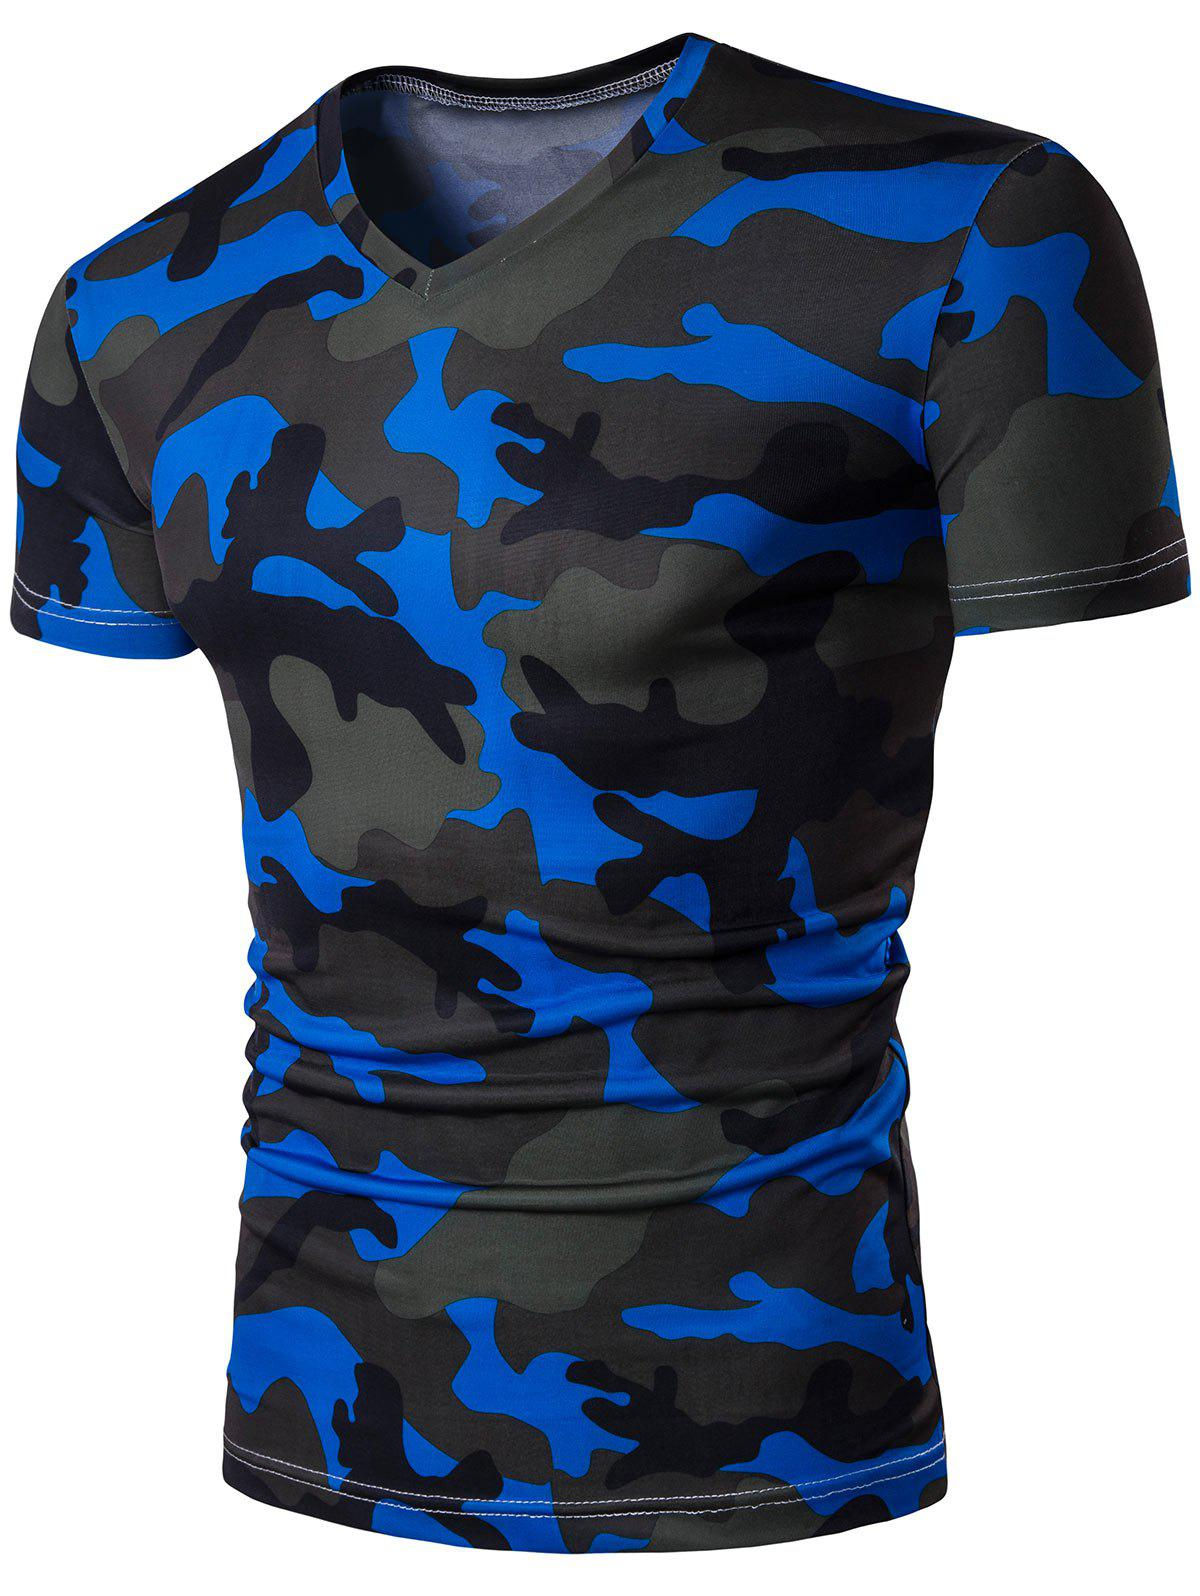 V Neck Short Sleeve Camo TeeMEN<br><br>Size: 5XL; Color: BLUE; Style: Casual,Fashion; Material: Polyester,Spandex; Sleeve Length: Short; Collar: V-Neck; Pattern Type: Camouflage; Weight: 0.2200kg; Package Contents: 1 x Tee;